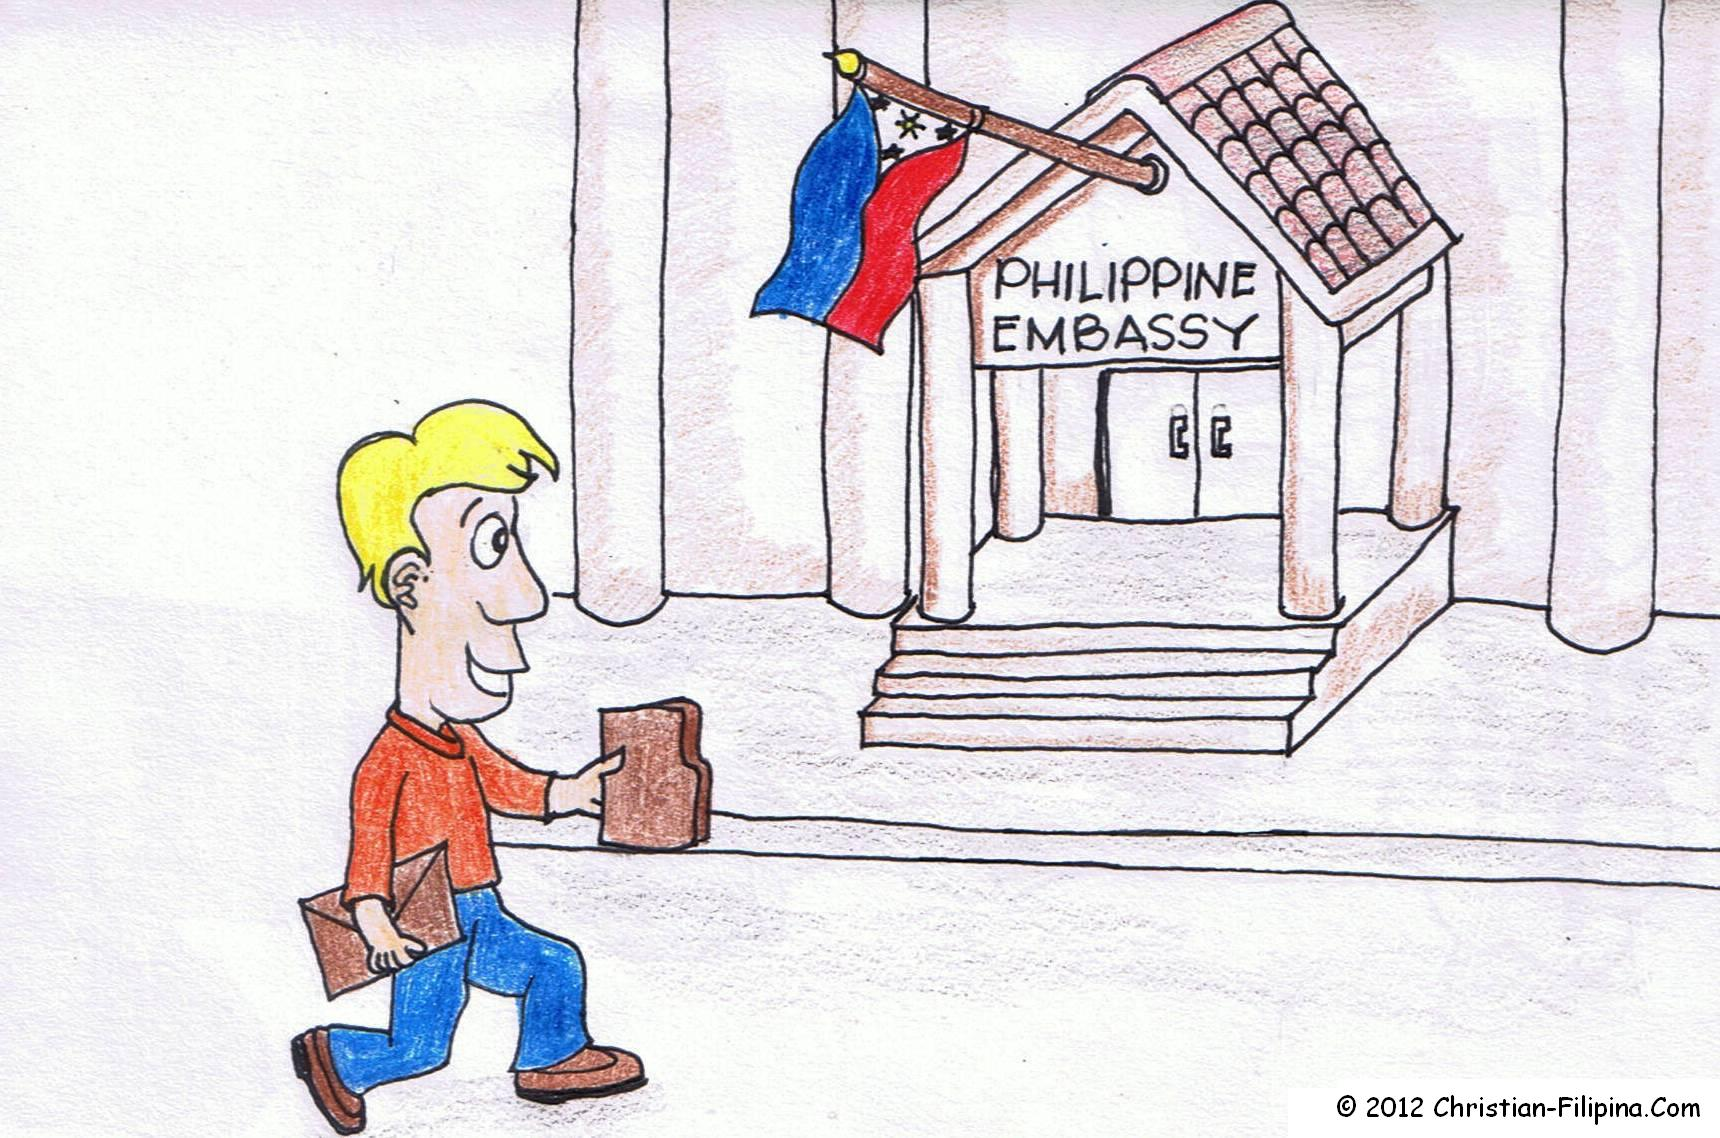 Applying for a visa at the Philippine Embassy